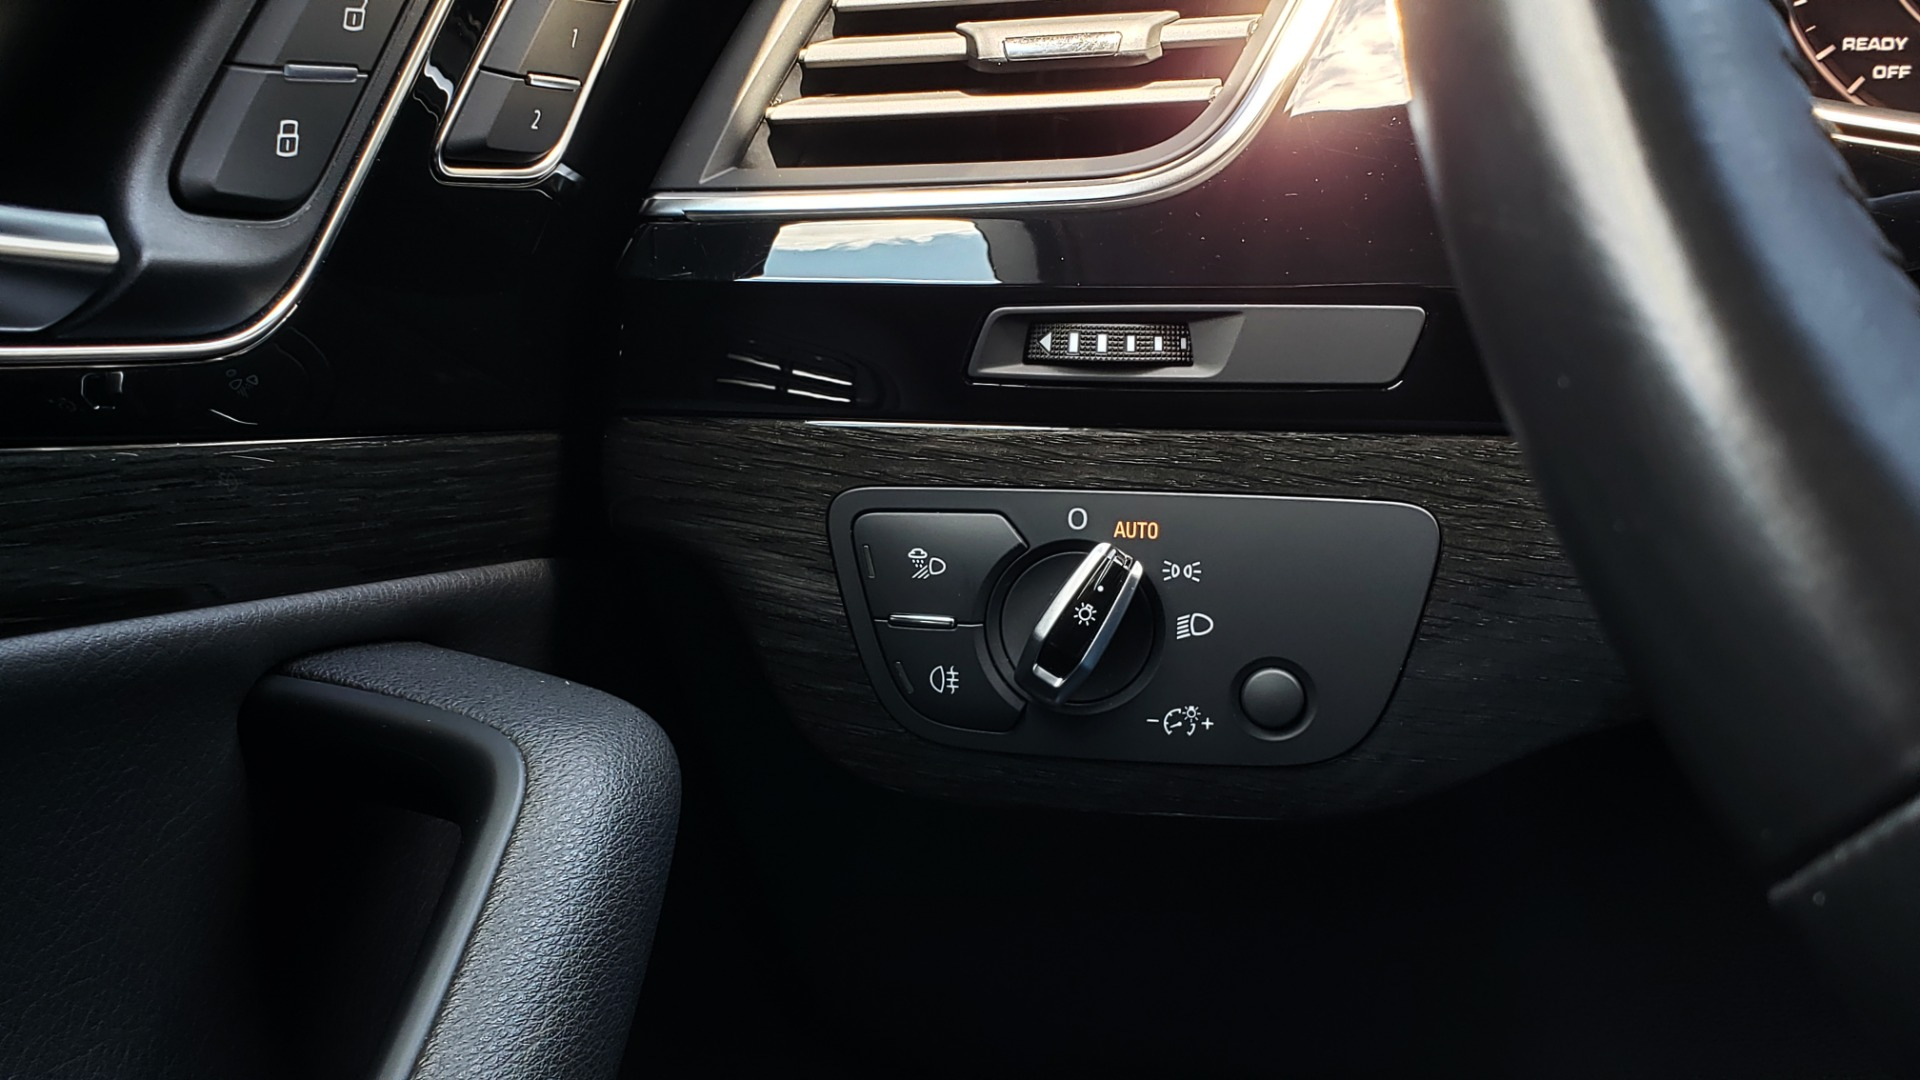 Used 2017 Audi Q7 PREMIUM PLUS / VISION PKG / NAV / PANO-ROOF / 3-ROW / REARVIEW for sale Sold at Formula Imports in Charlotte NC 28227 41